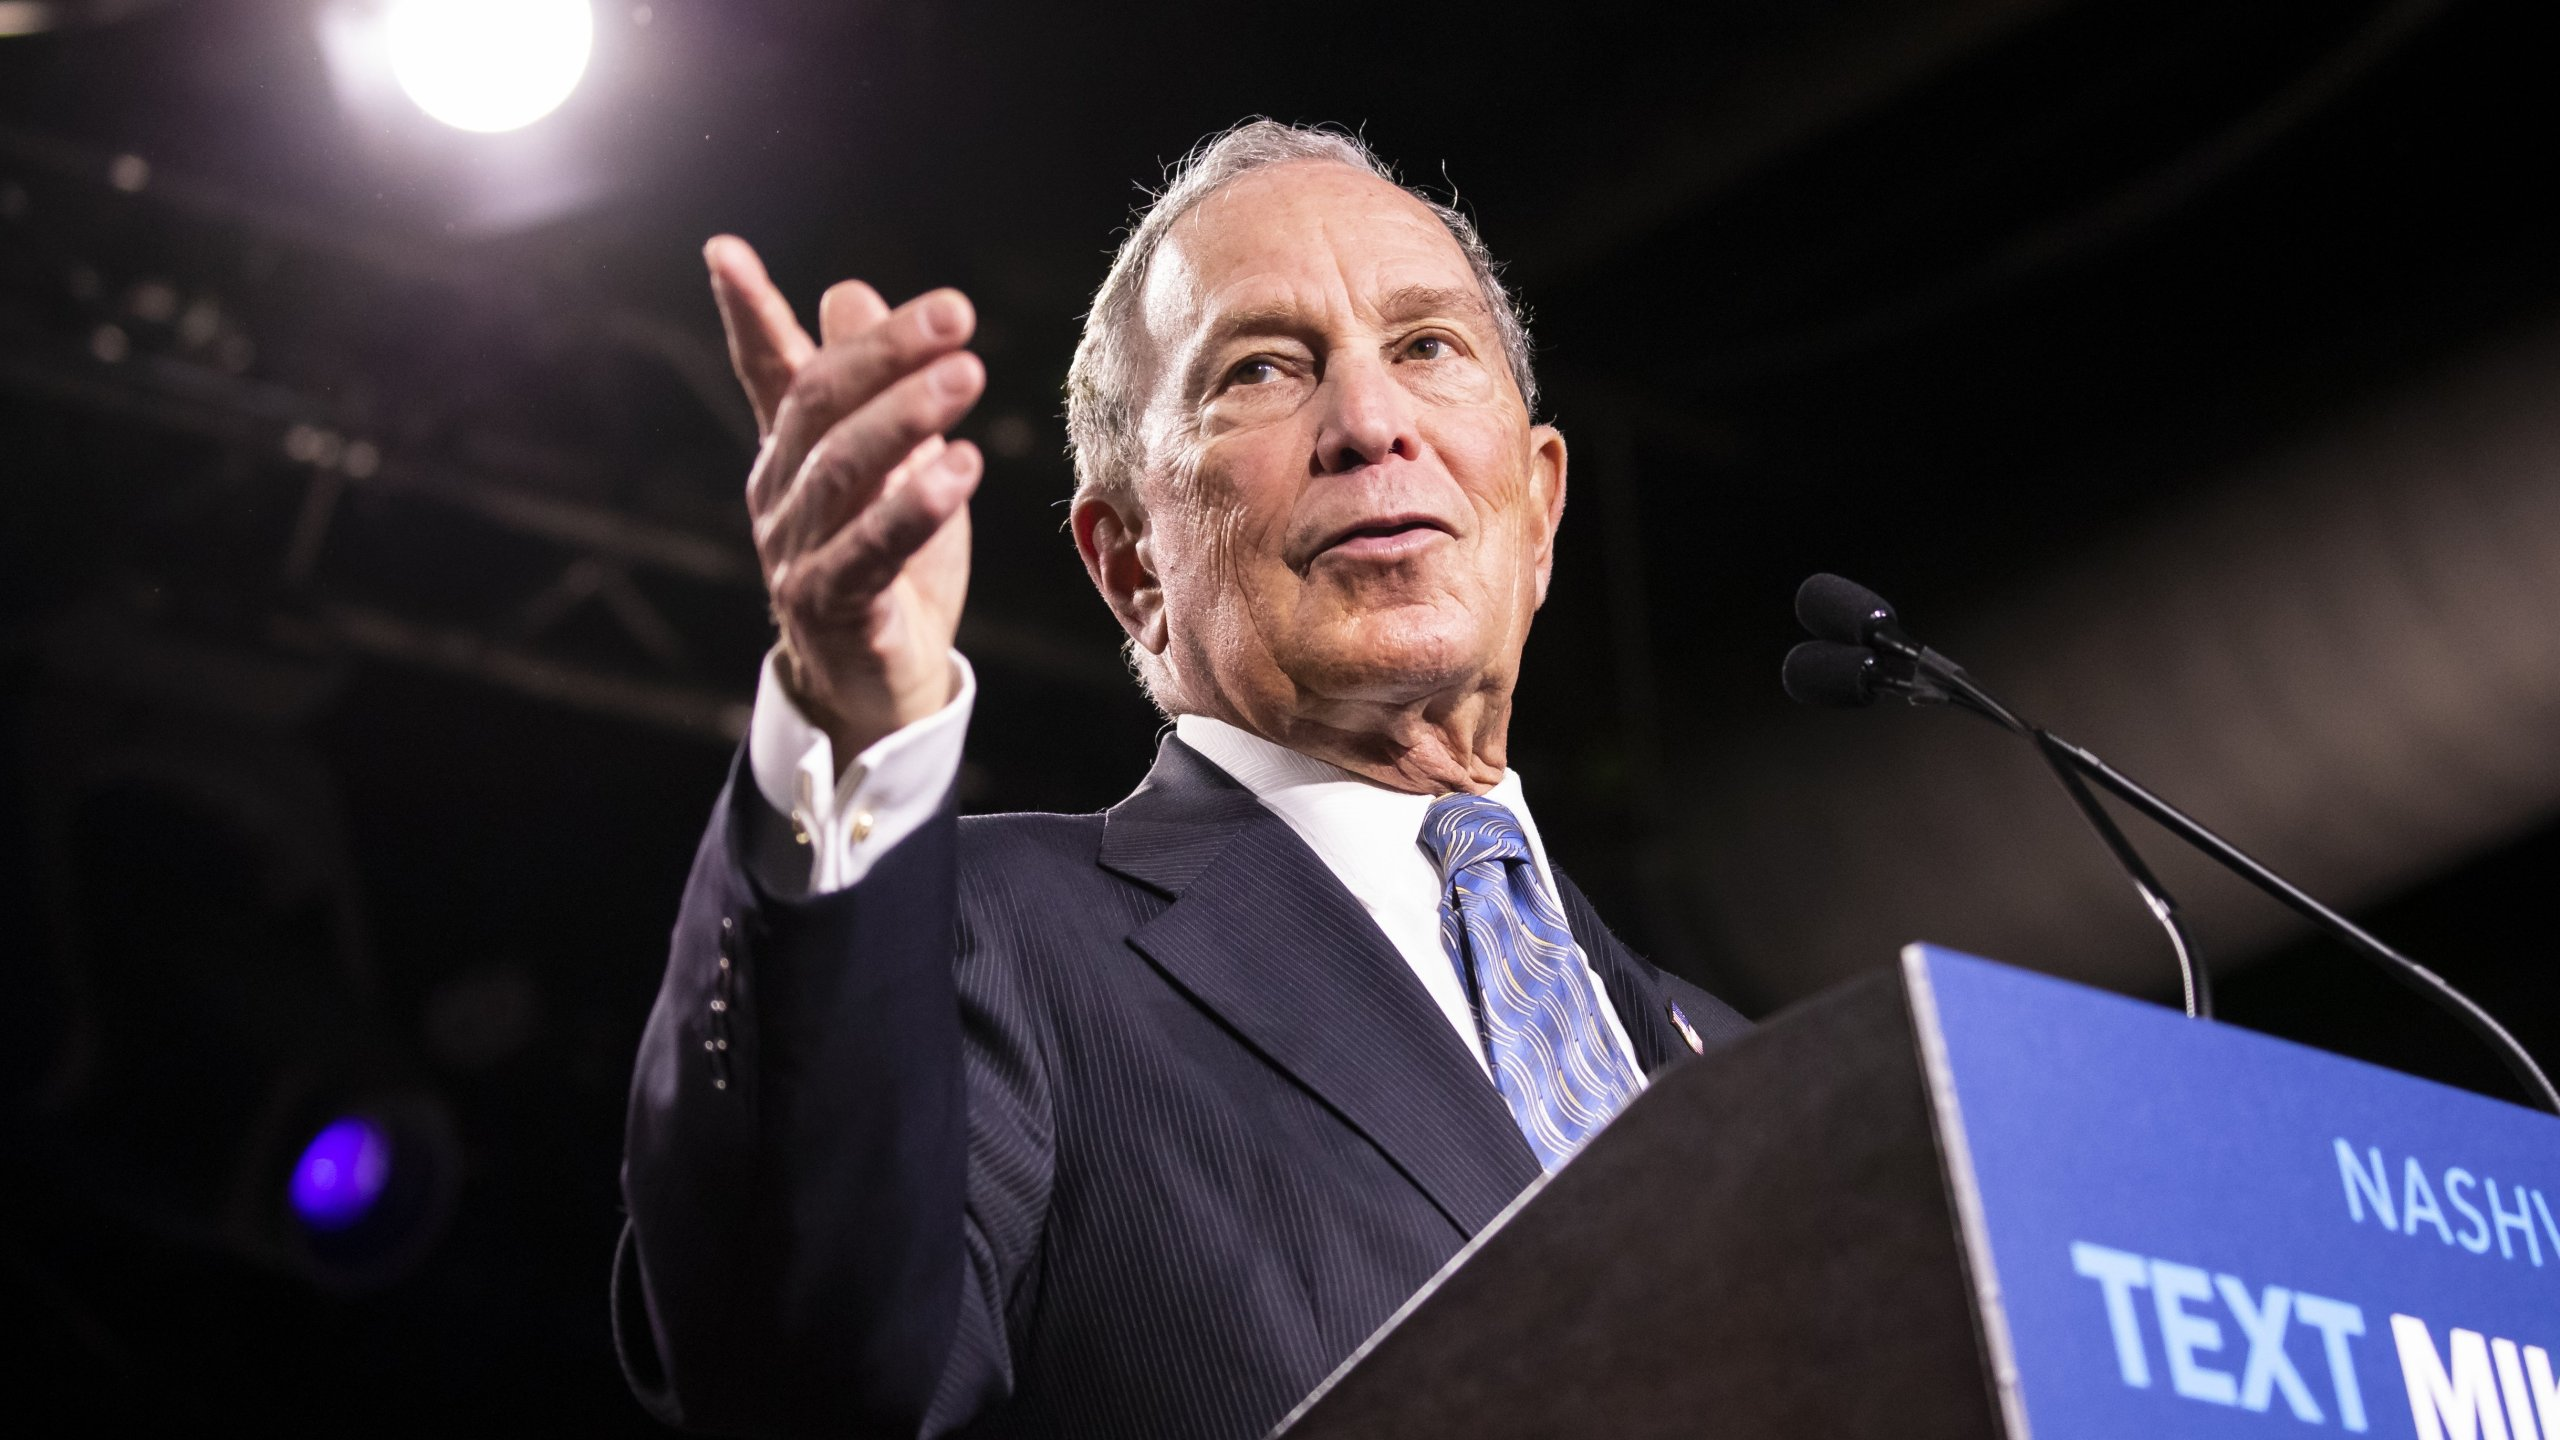 Democratic presidential candidate former New York City Mayor Mike Bloomberg delivers remarks during a campaign rally on February 12, 2020 in Nashville, Tennessee. (Credit: Brett Carlsen/Getty Images)